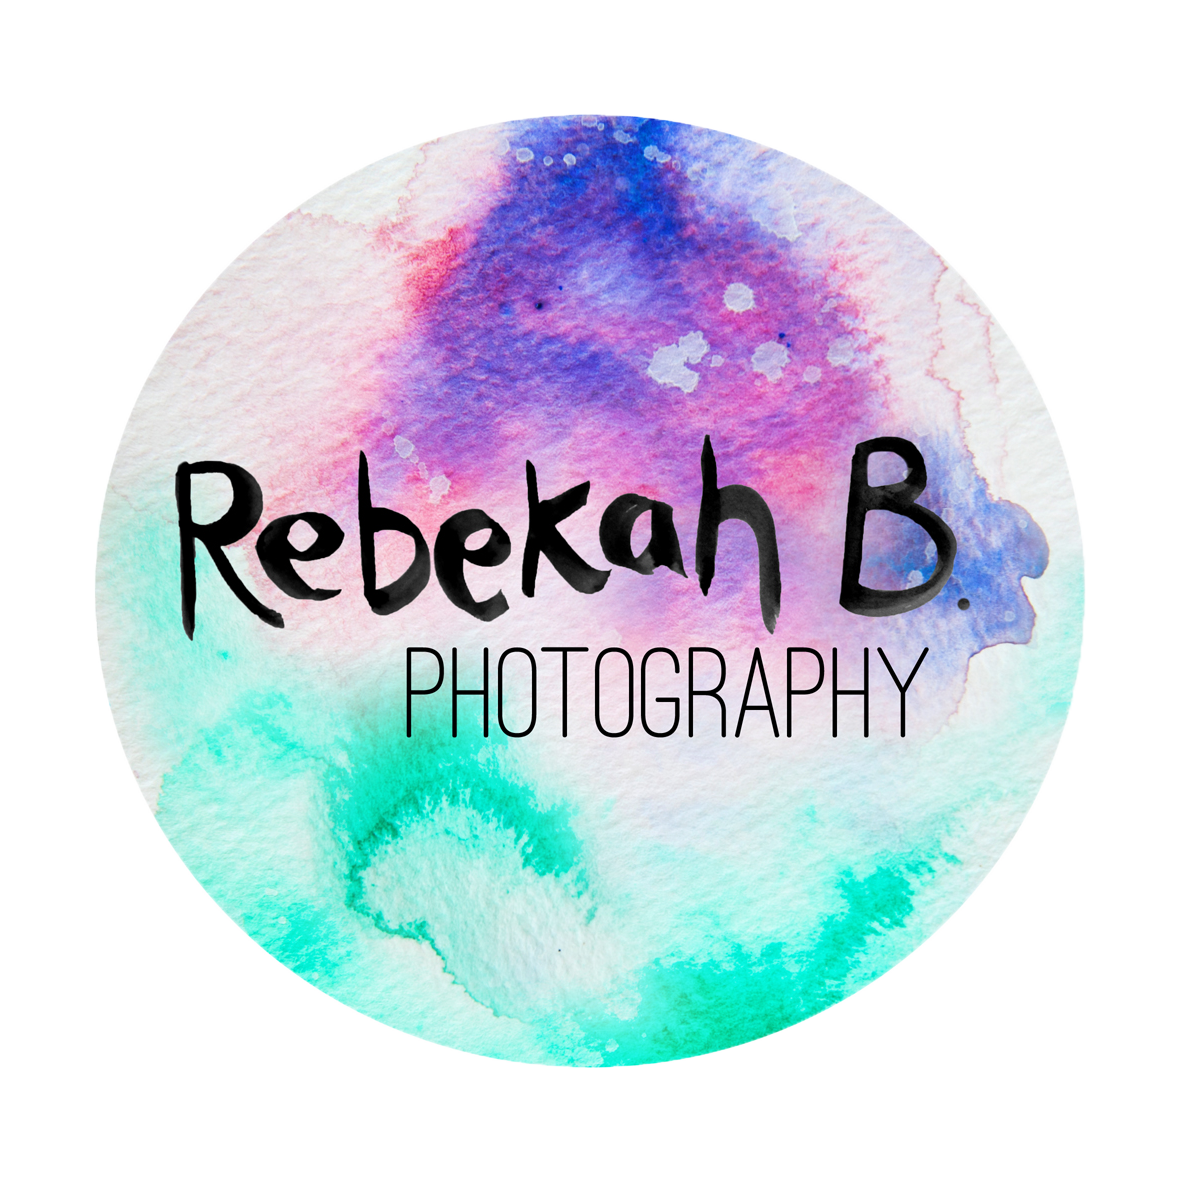 Rebekah B. Photography